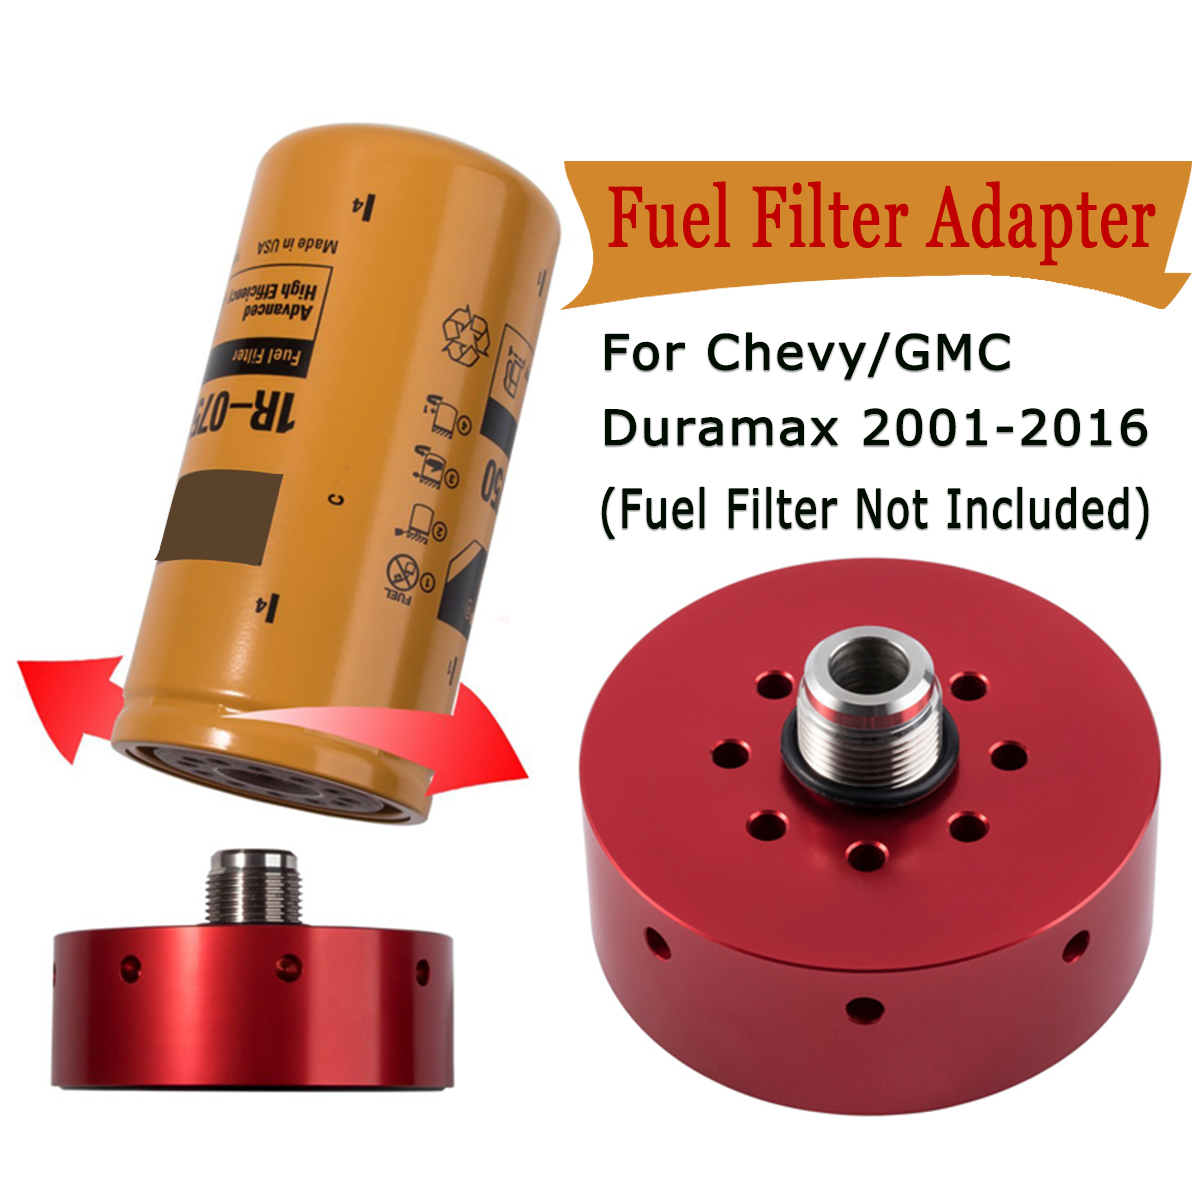 red fuel filter adapter fits for chevy duramax lb7 lly lbz lmm lml 2001 2016 accessories [ 1200 x 1200 Pixel ]